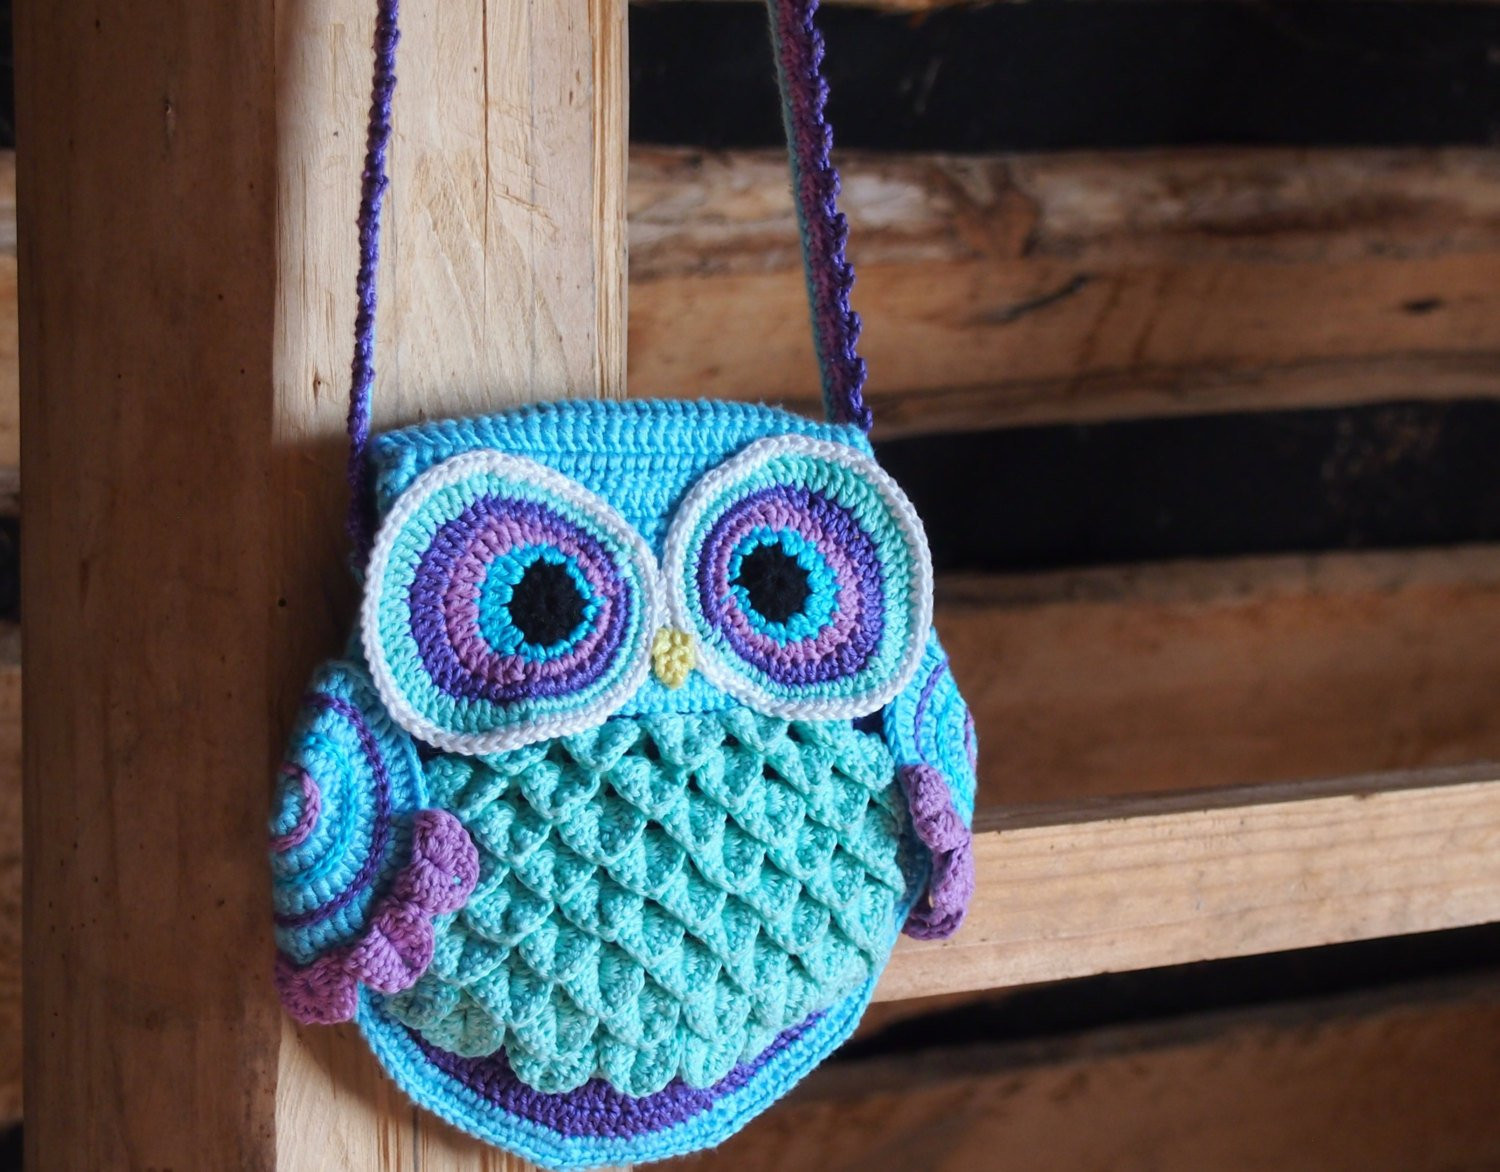 Crochet Backpack Pattern Inspirational Crochet Bag Pattern Crochet Owl Pattern Crochet Purse Of Perfect 44 Pictures Crochet Backpack Pattern